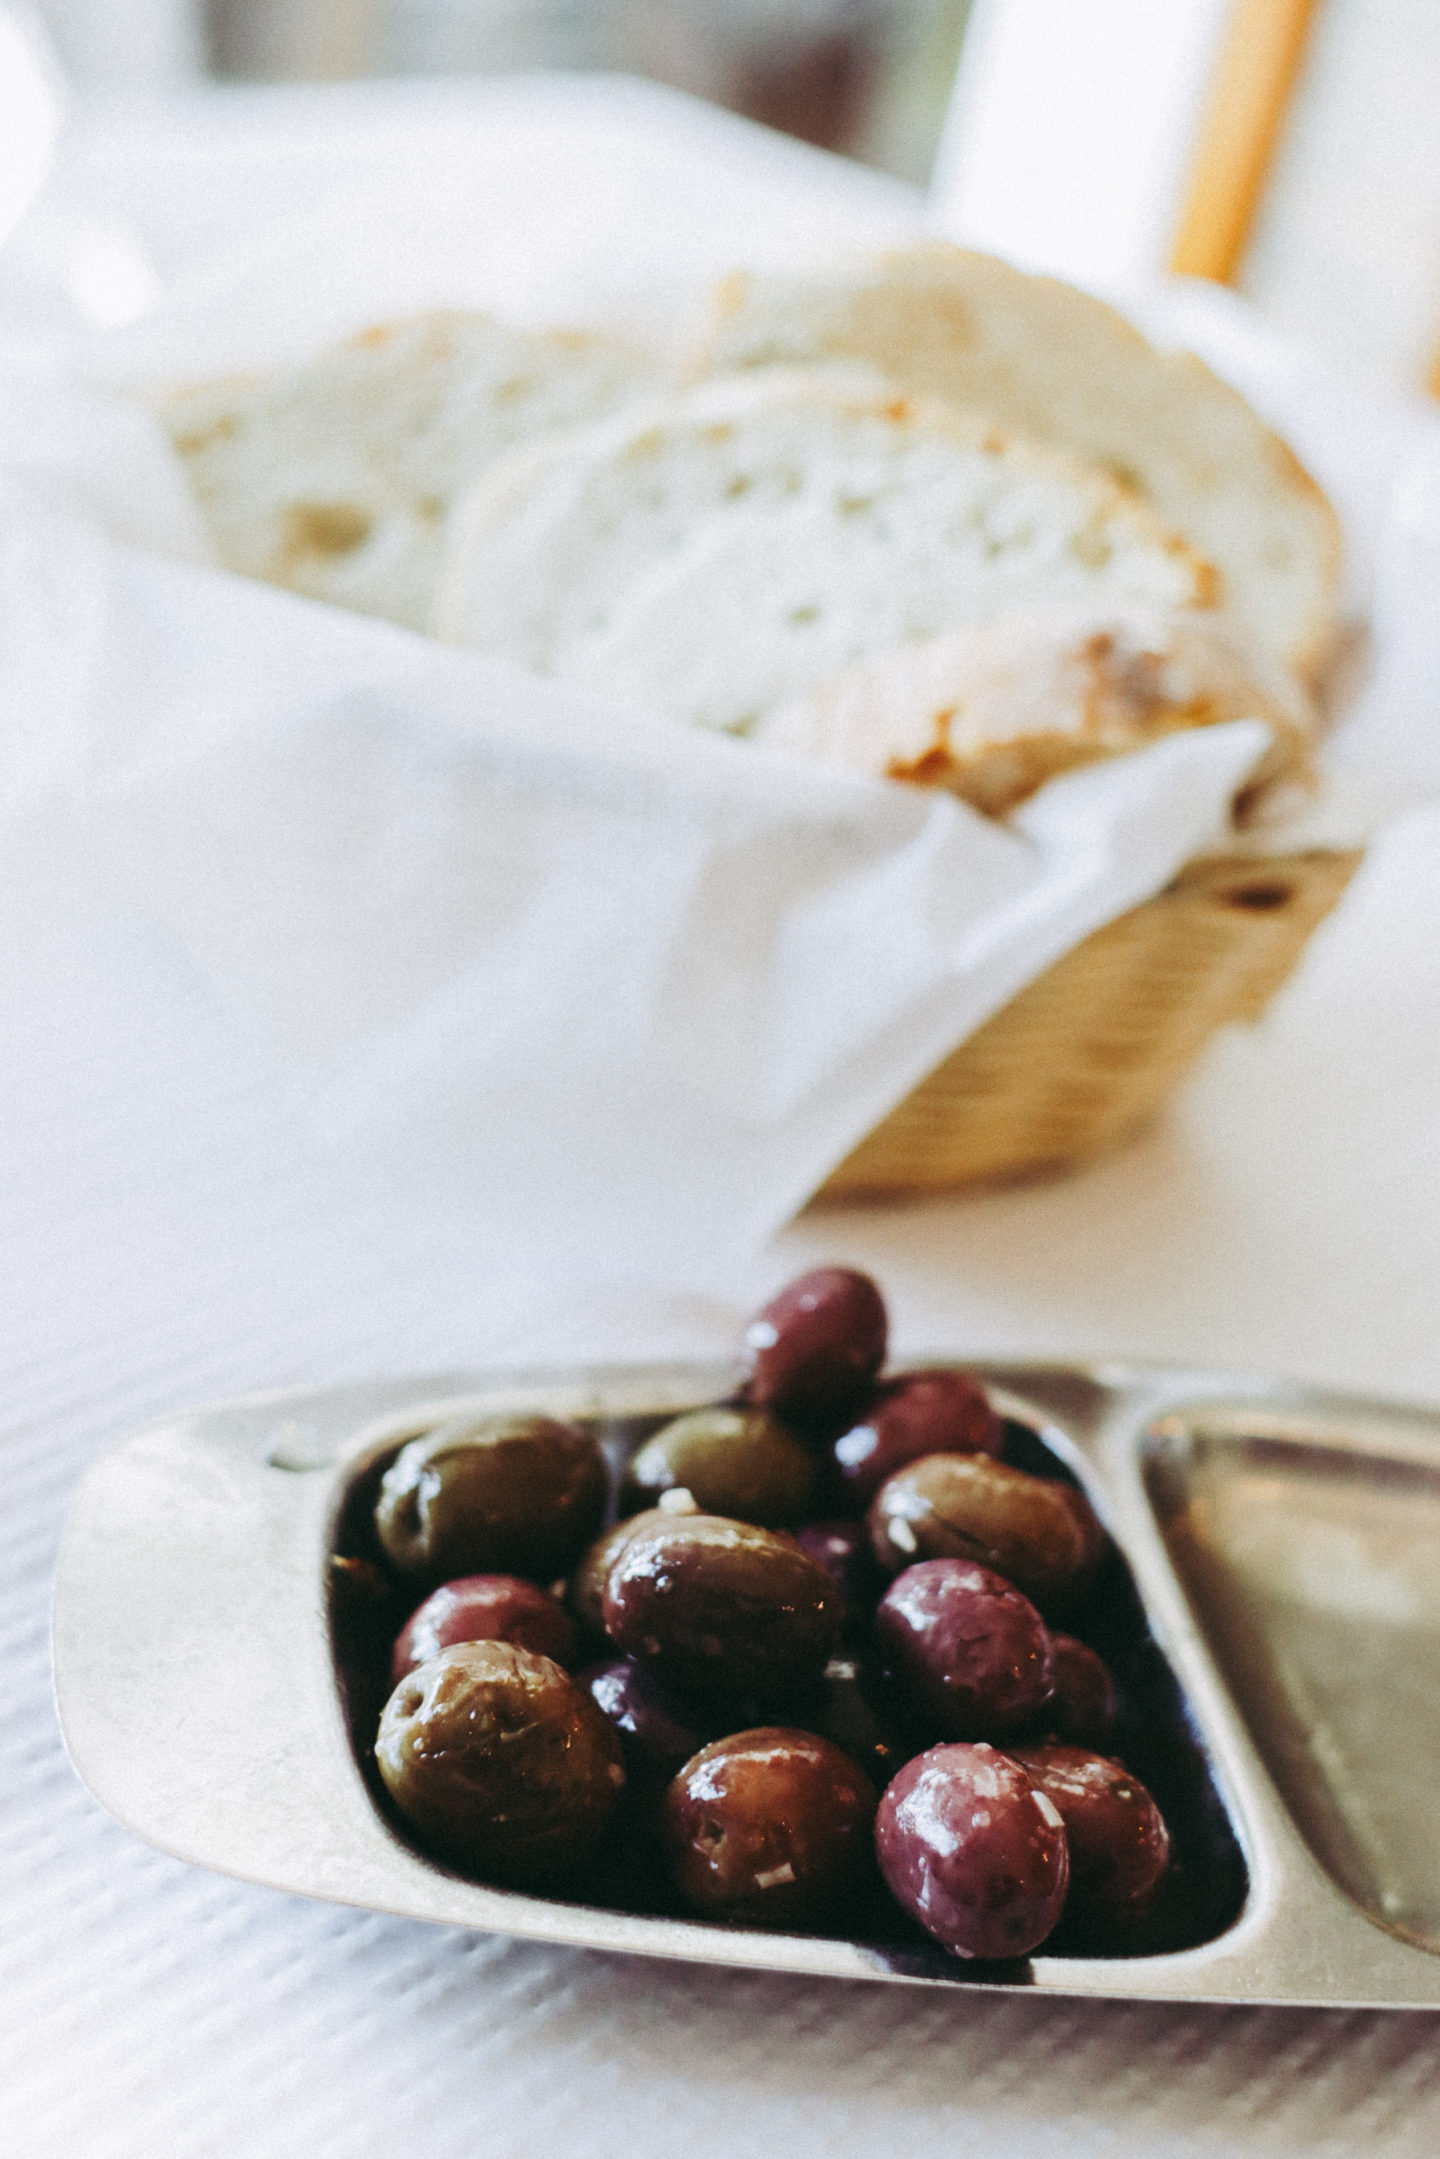 Top 4 Places To Eat in Cascais, Portugal - Olives and Bread at O Carloto tasca - by thecasualfree.com